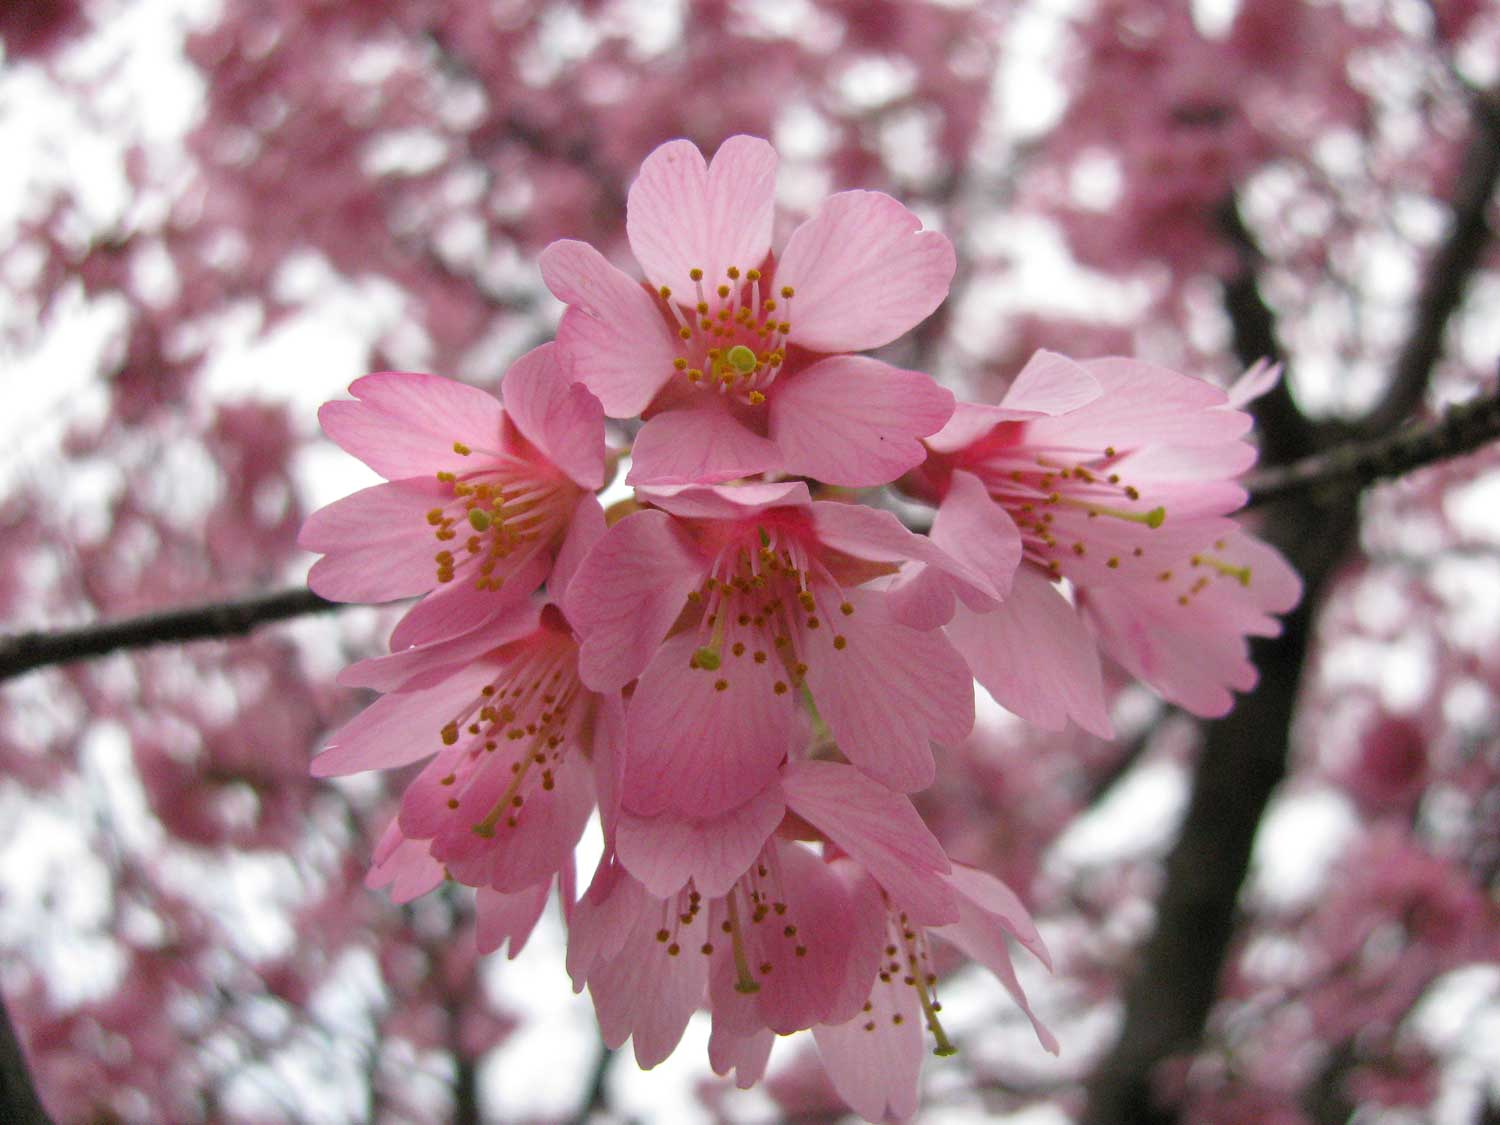 Flowers images Pink Cherry Blossom HD wallpaper and background photos